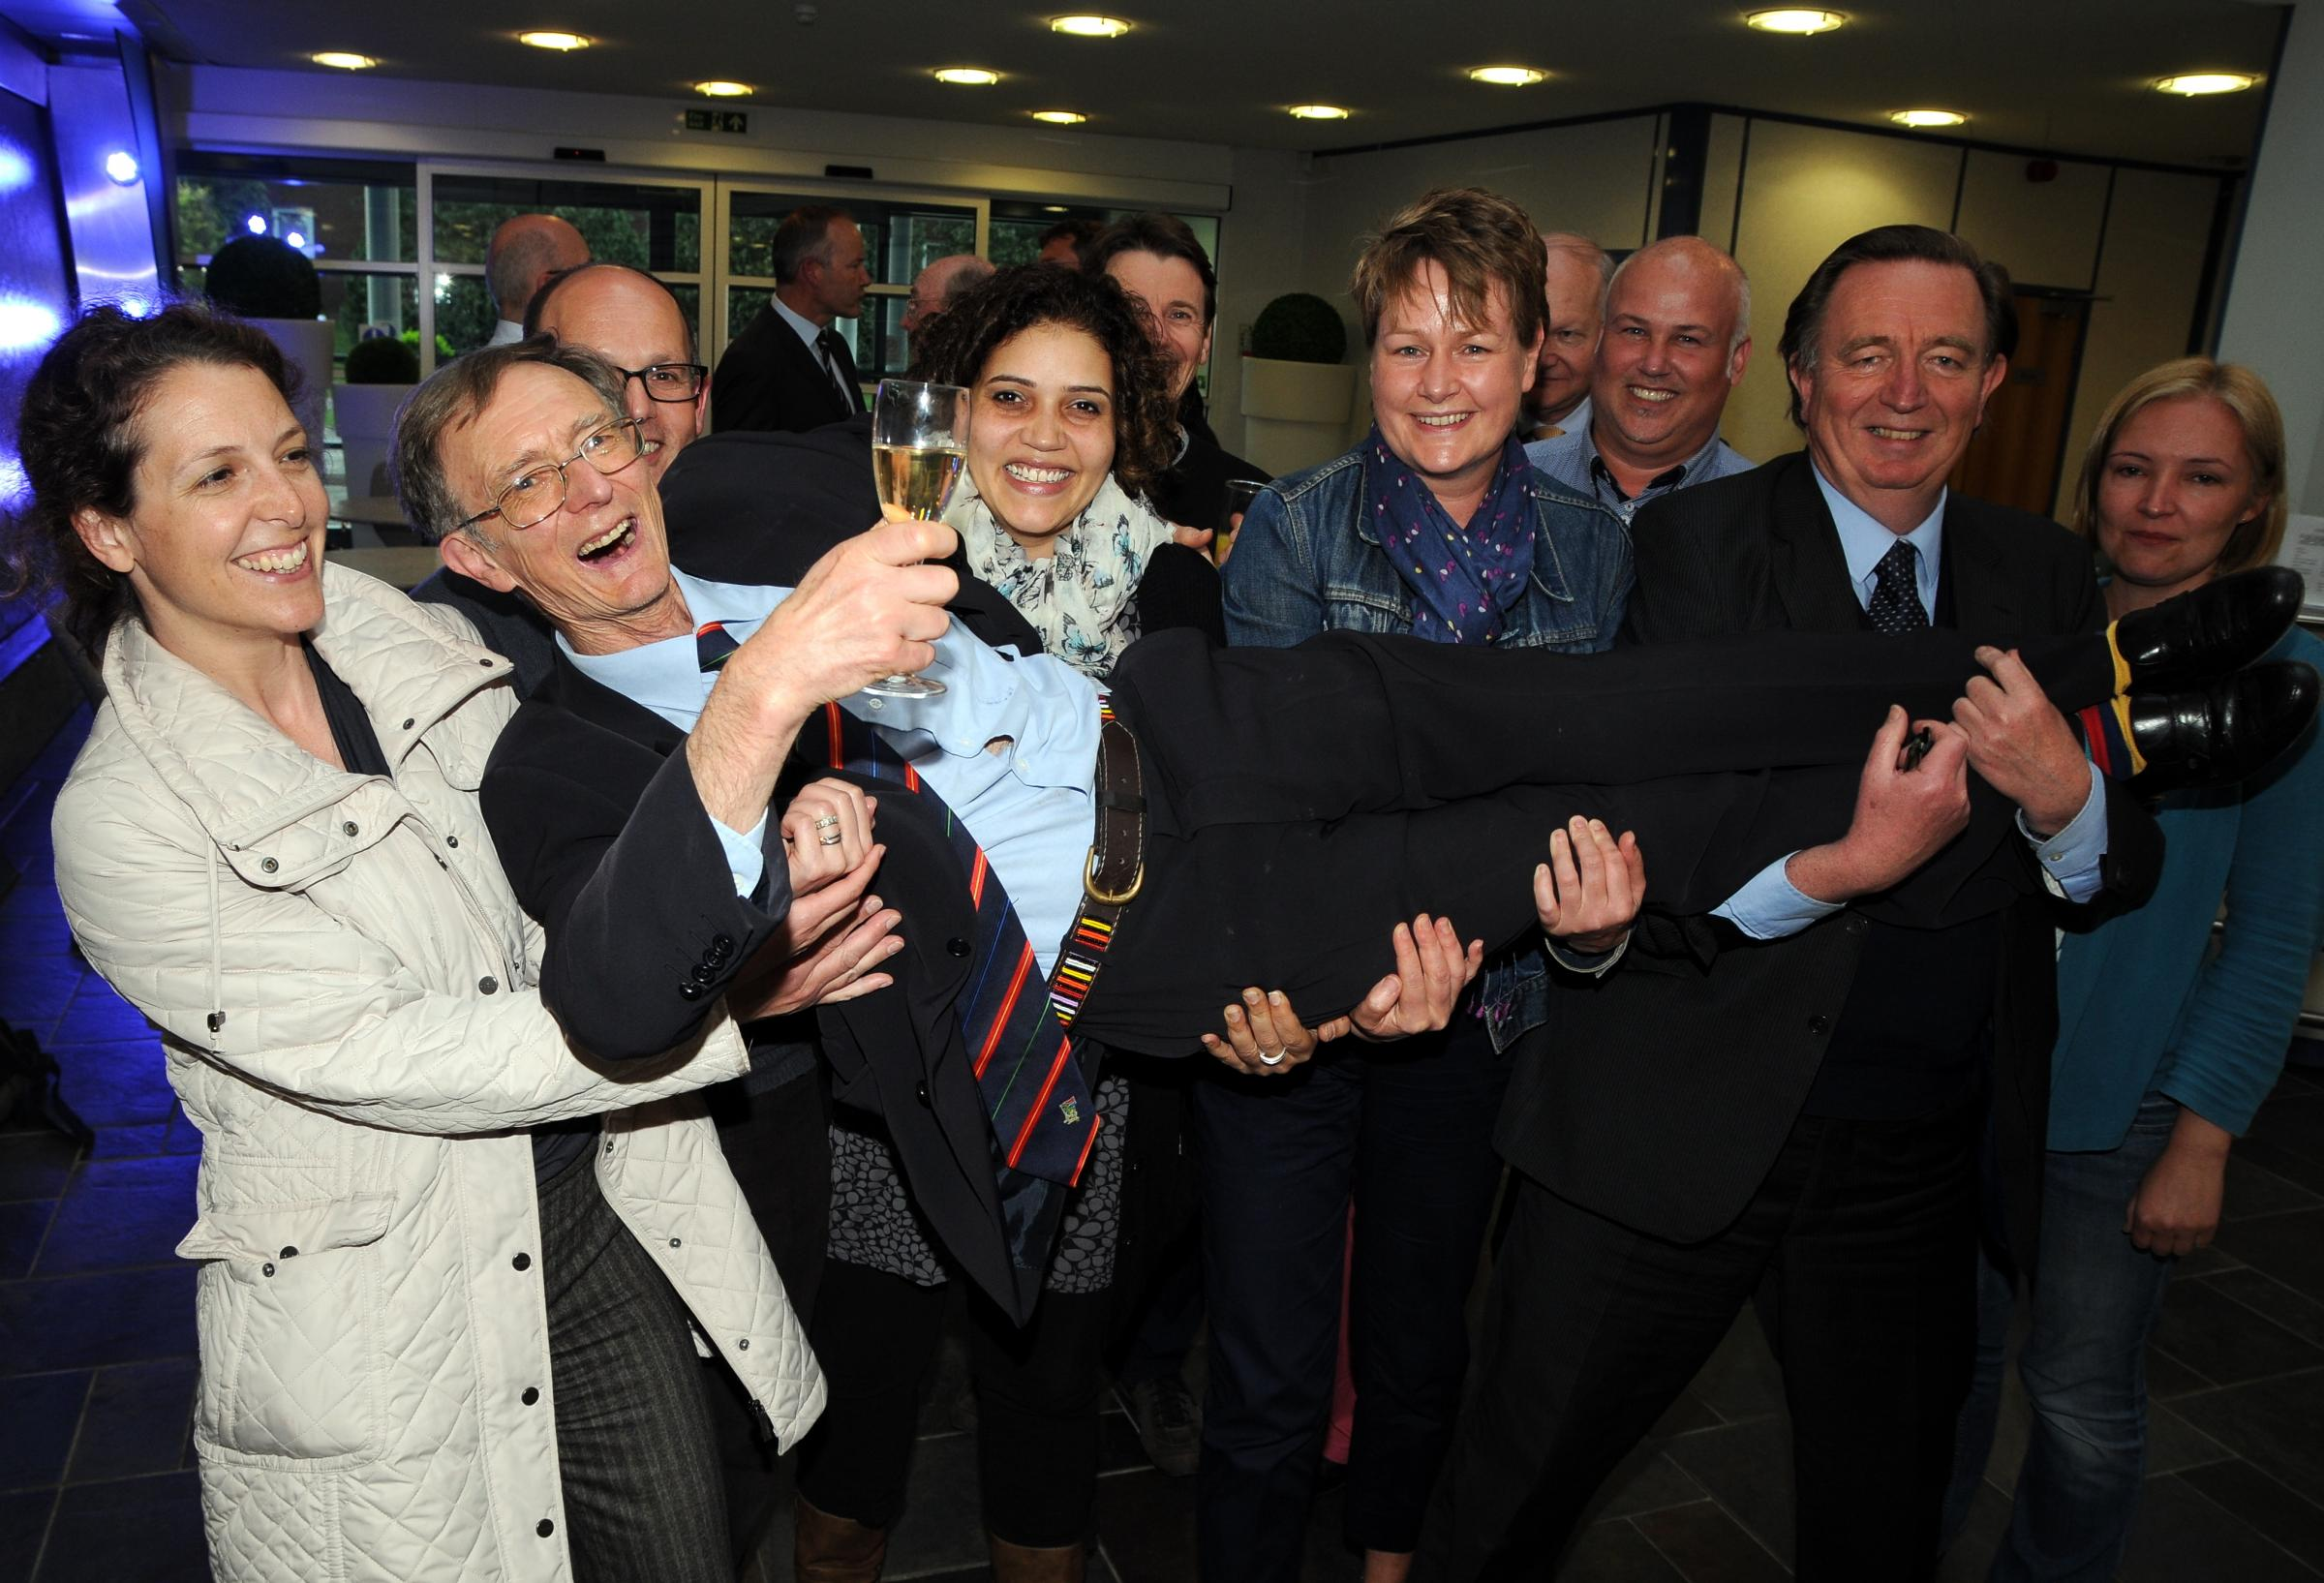 Consultant anaesthetist Keith Thomson gets a lift from well-wishers